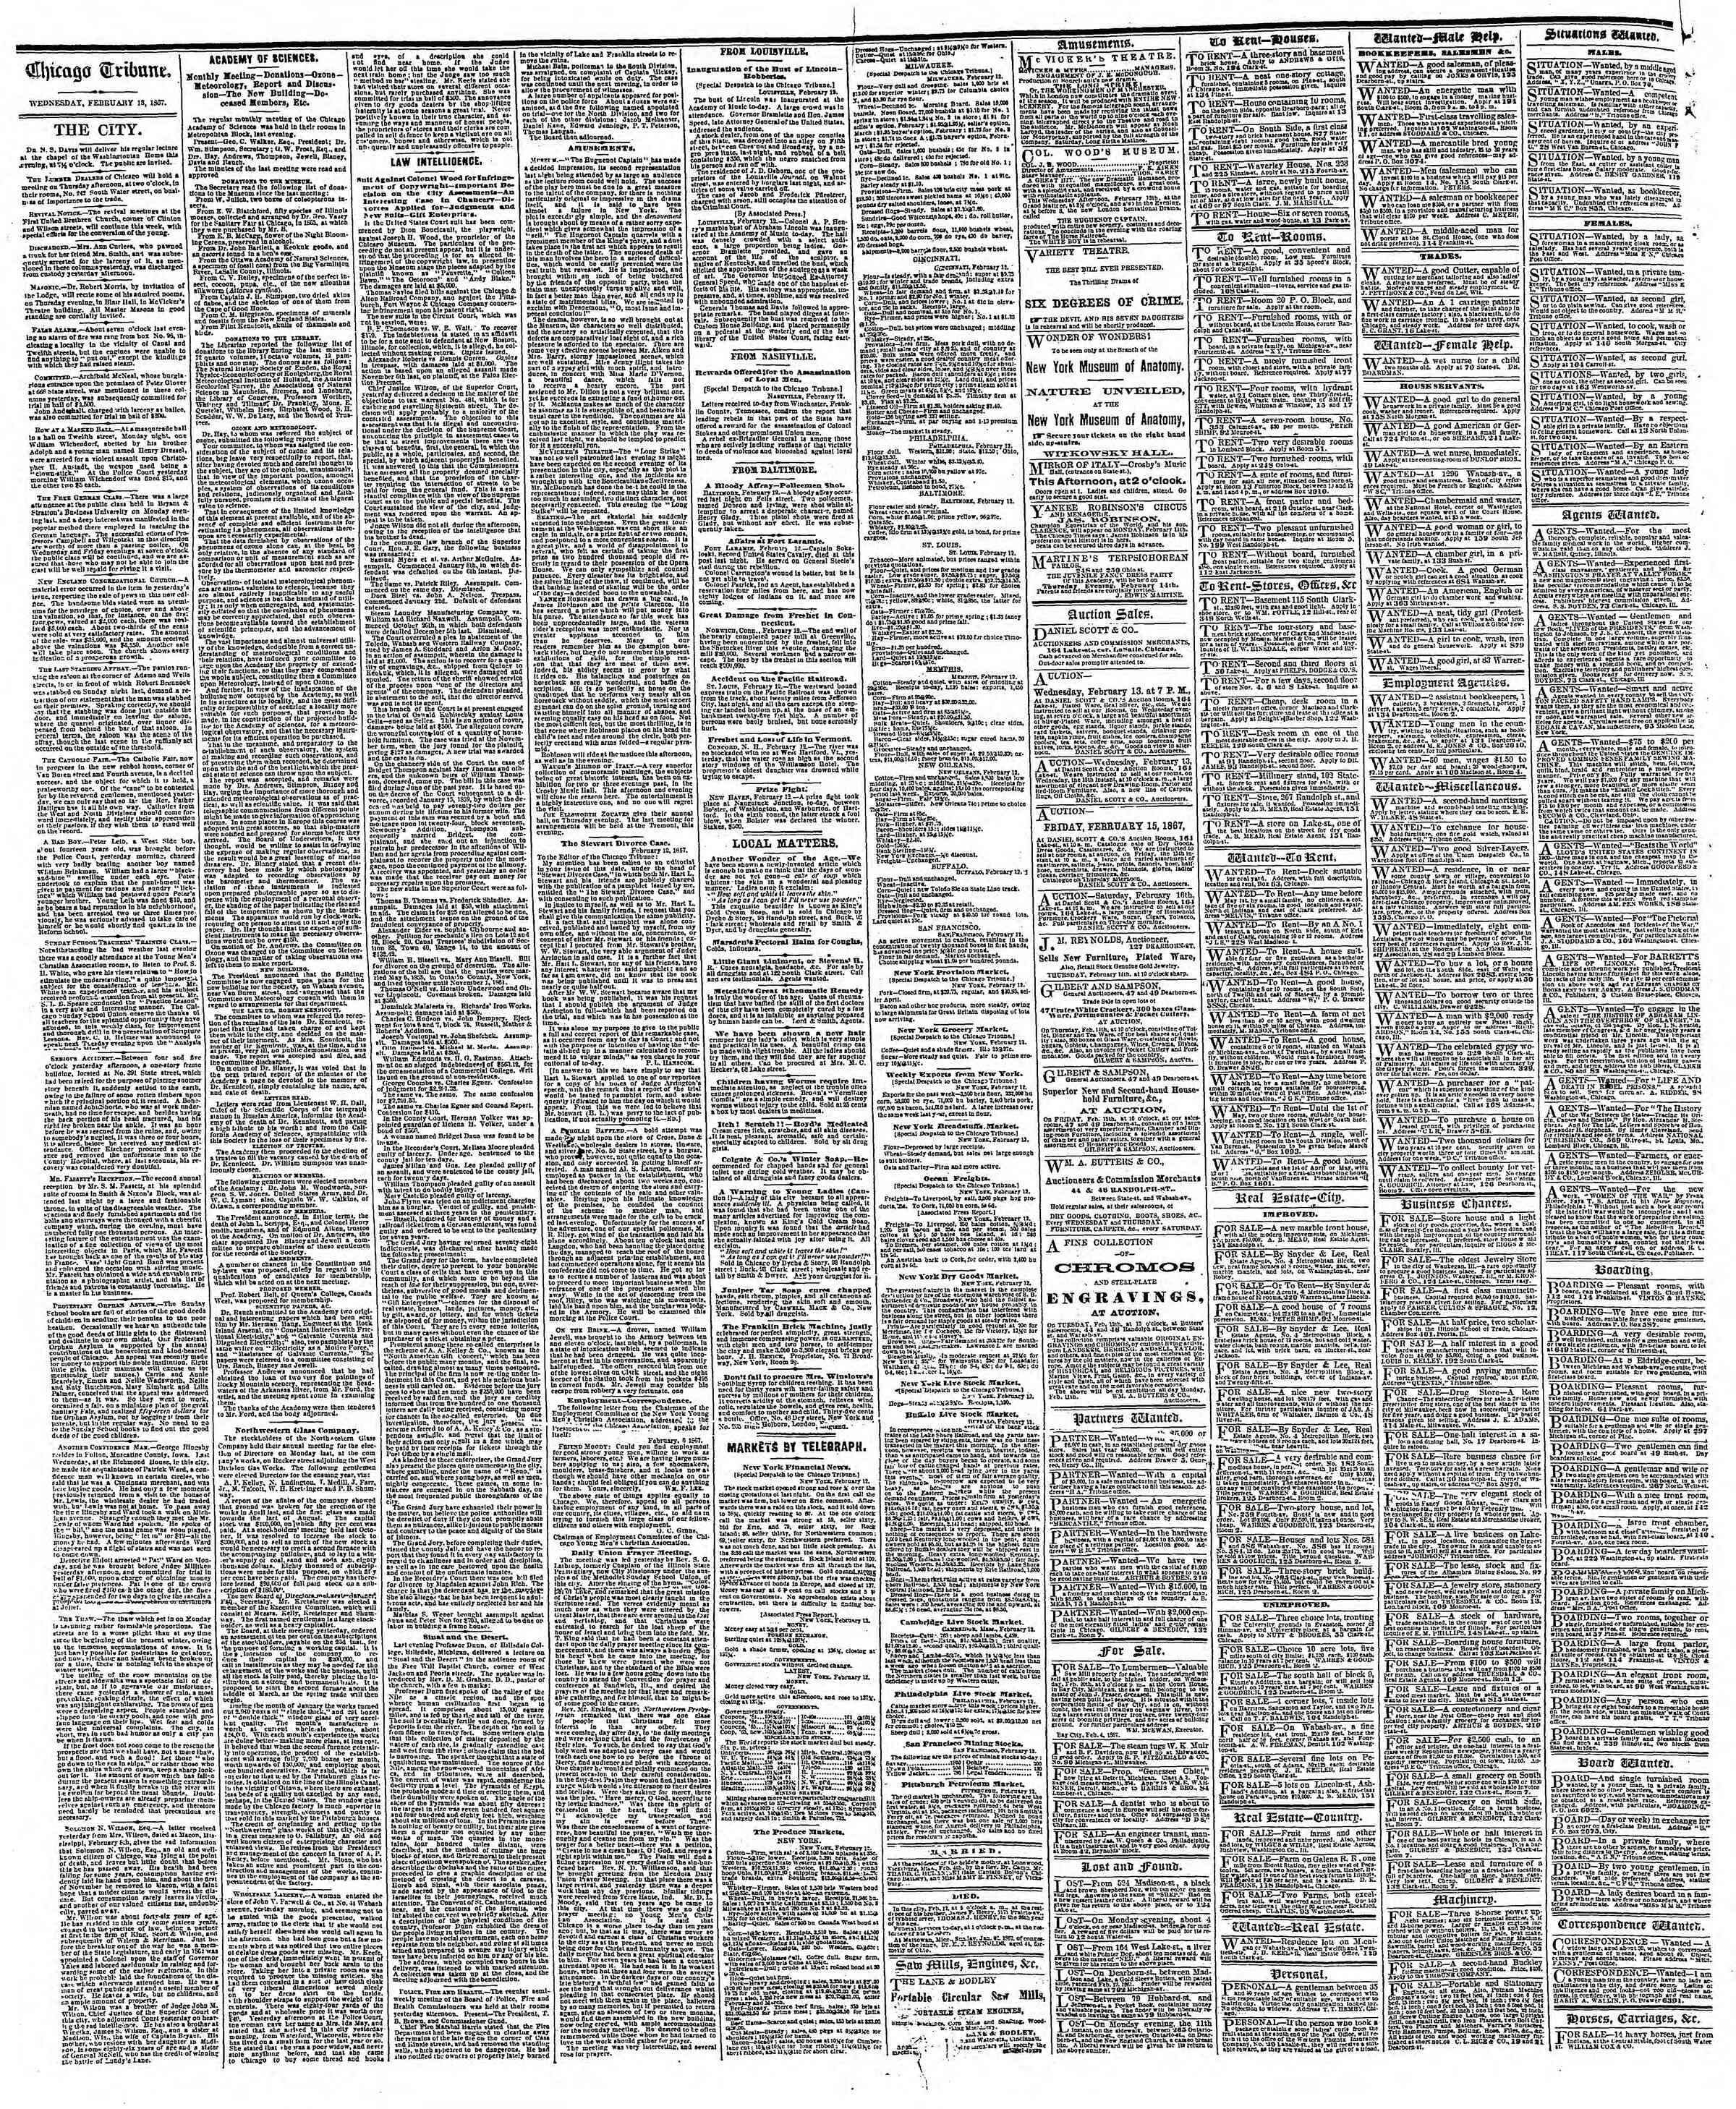 Newspaper of The Chicago Tribune dated 13 Şubat 1867 Page 4